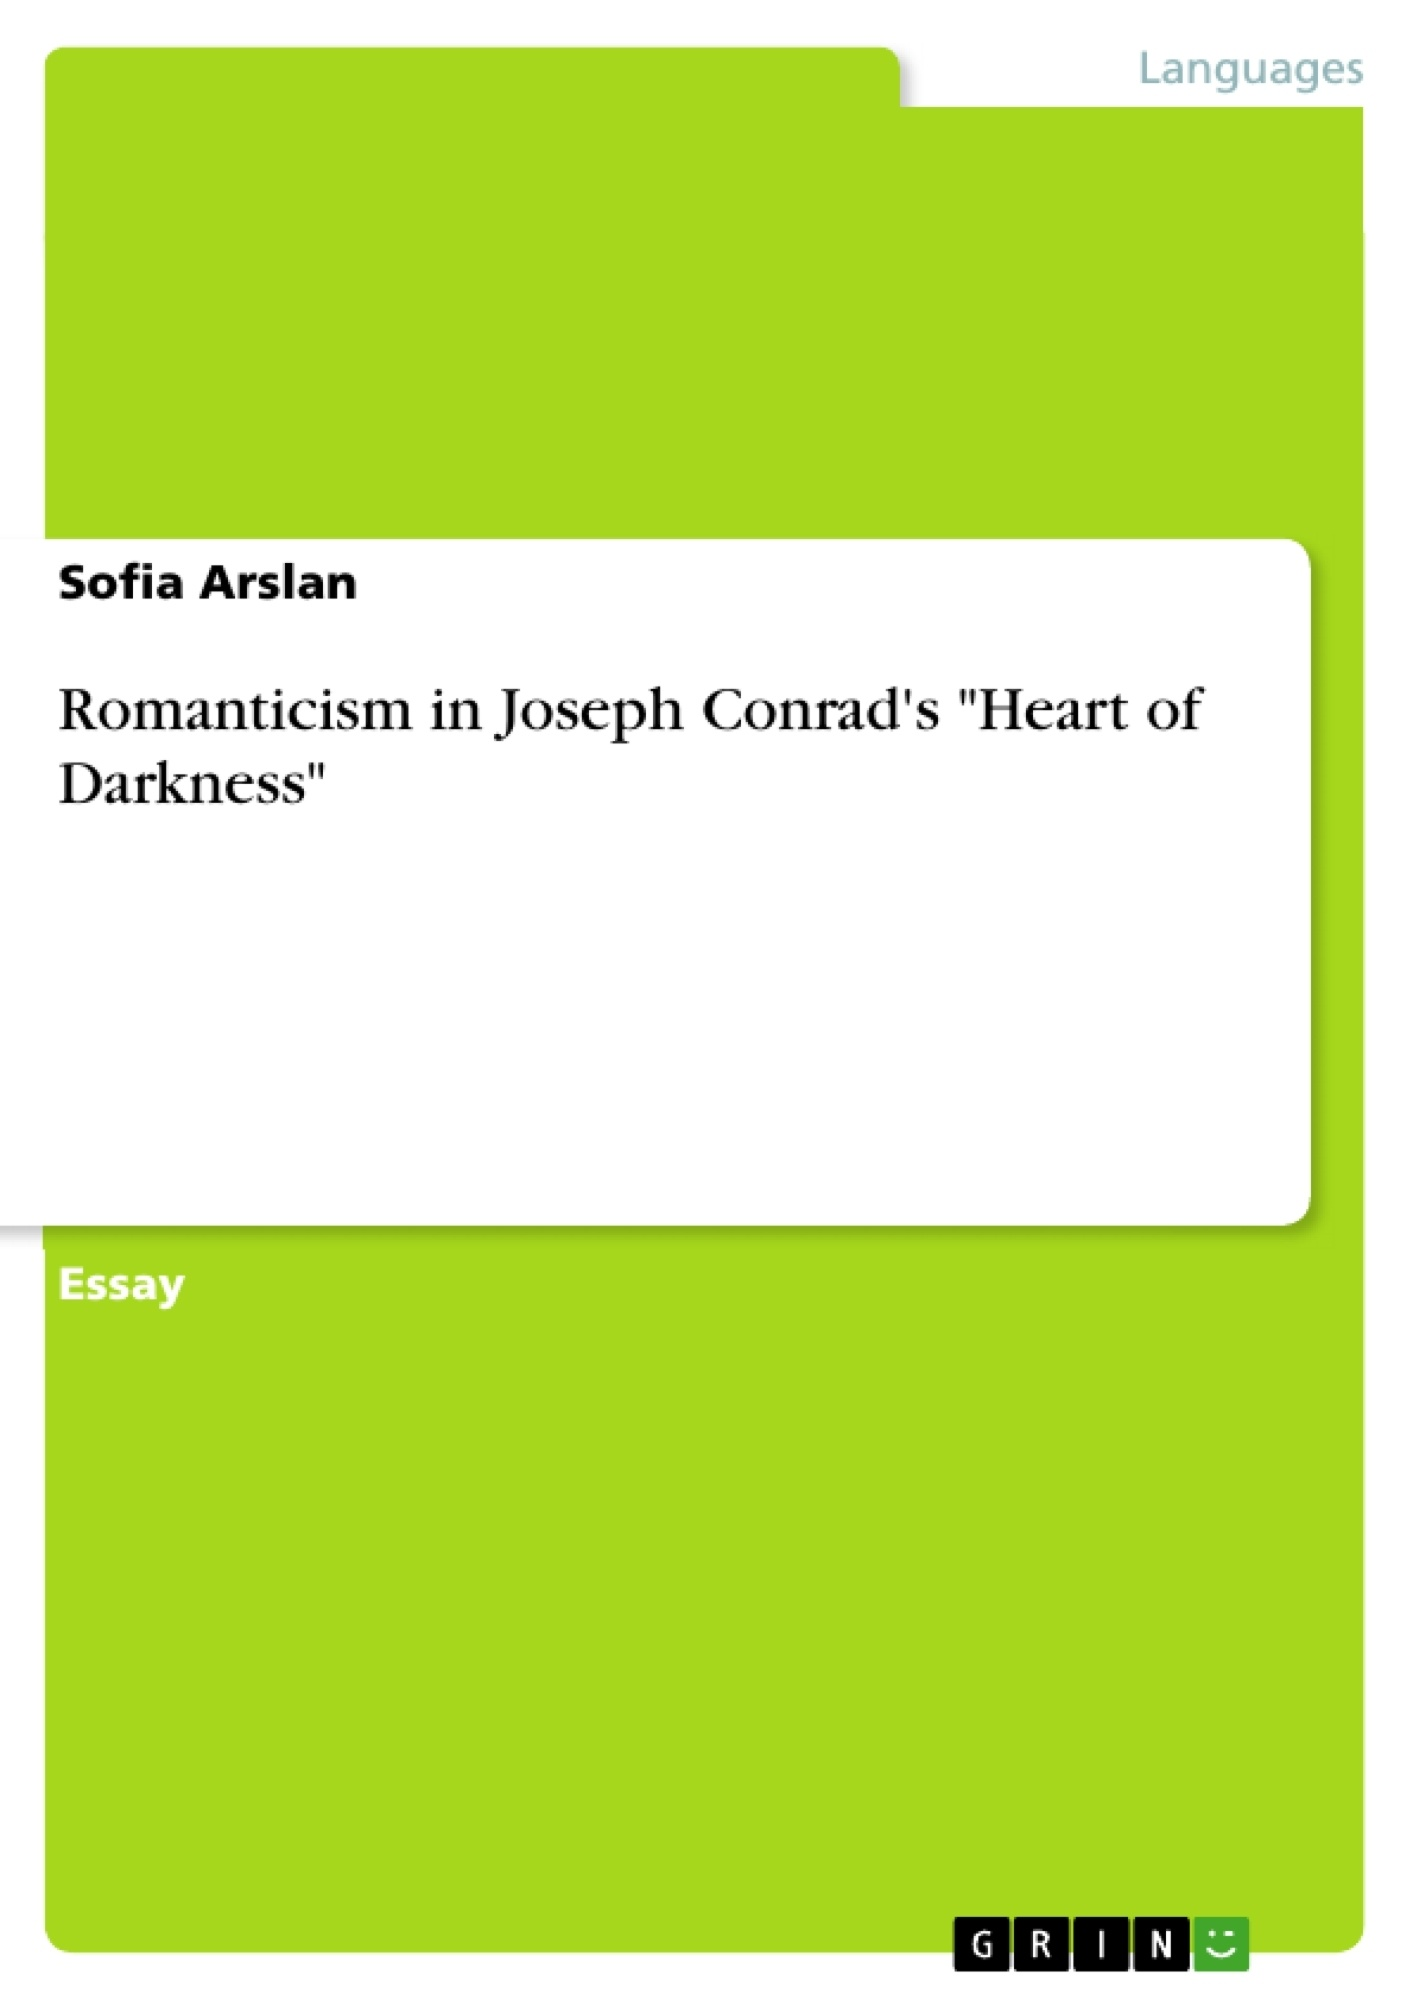 r ticism in joseph conrad s heart of darkness publish your upload your own papers earn money and win an iphone 7